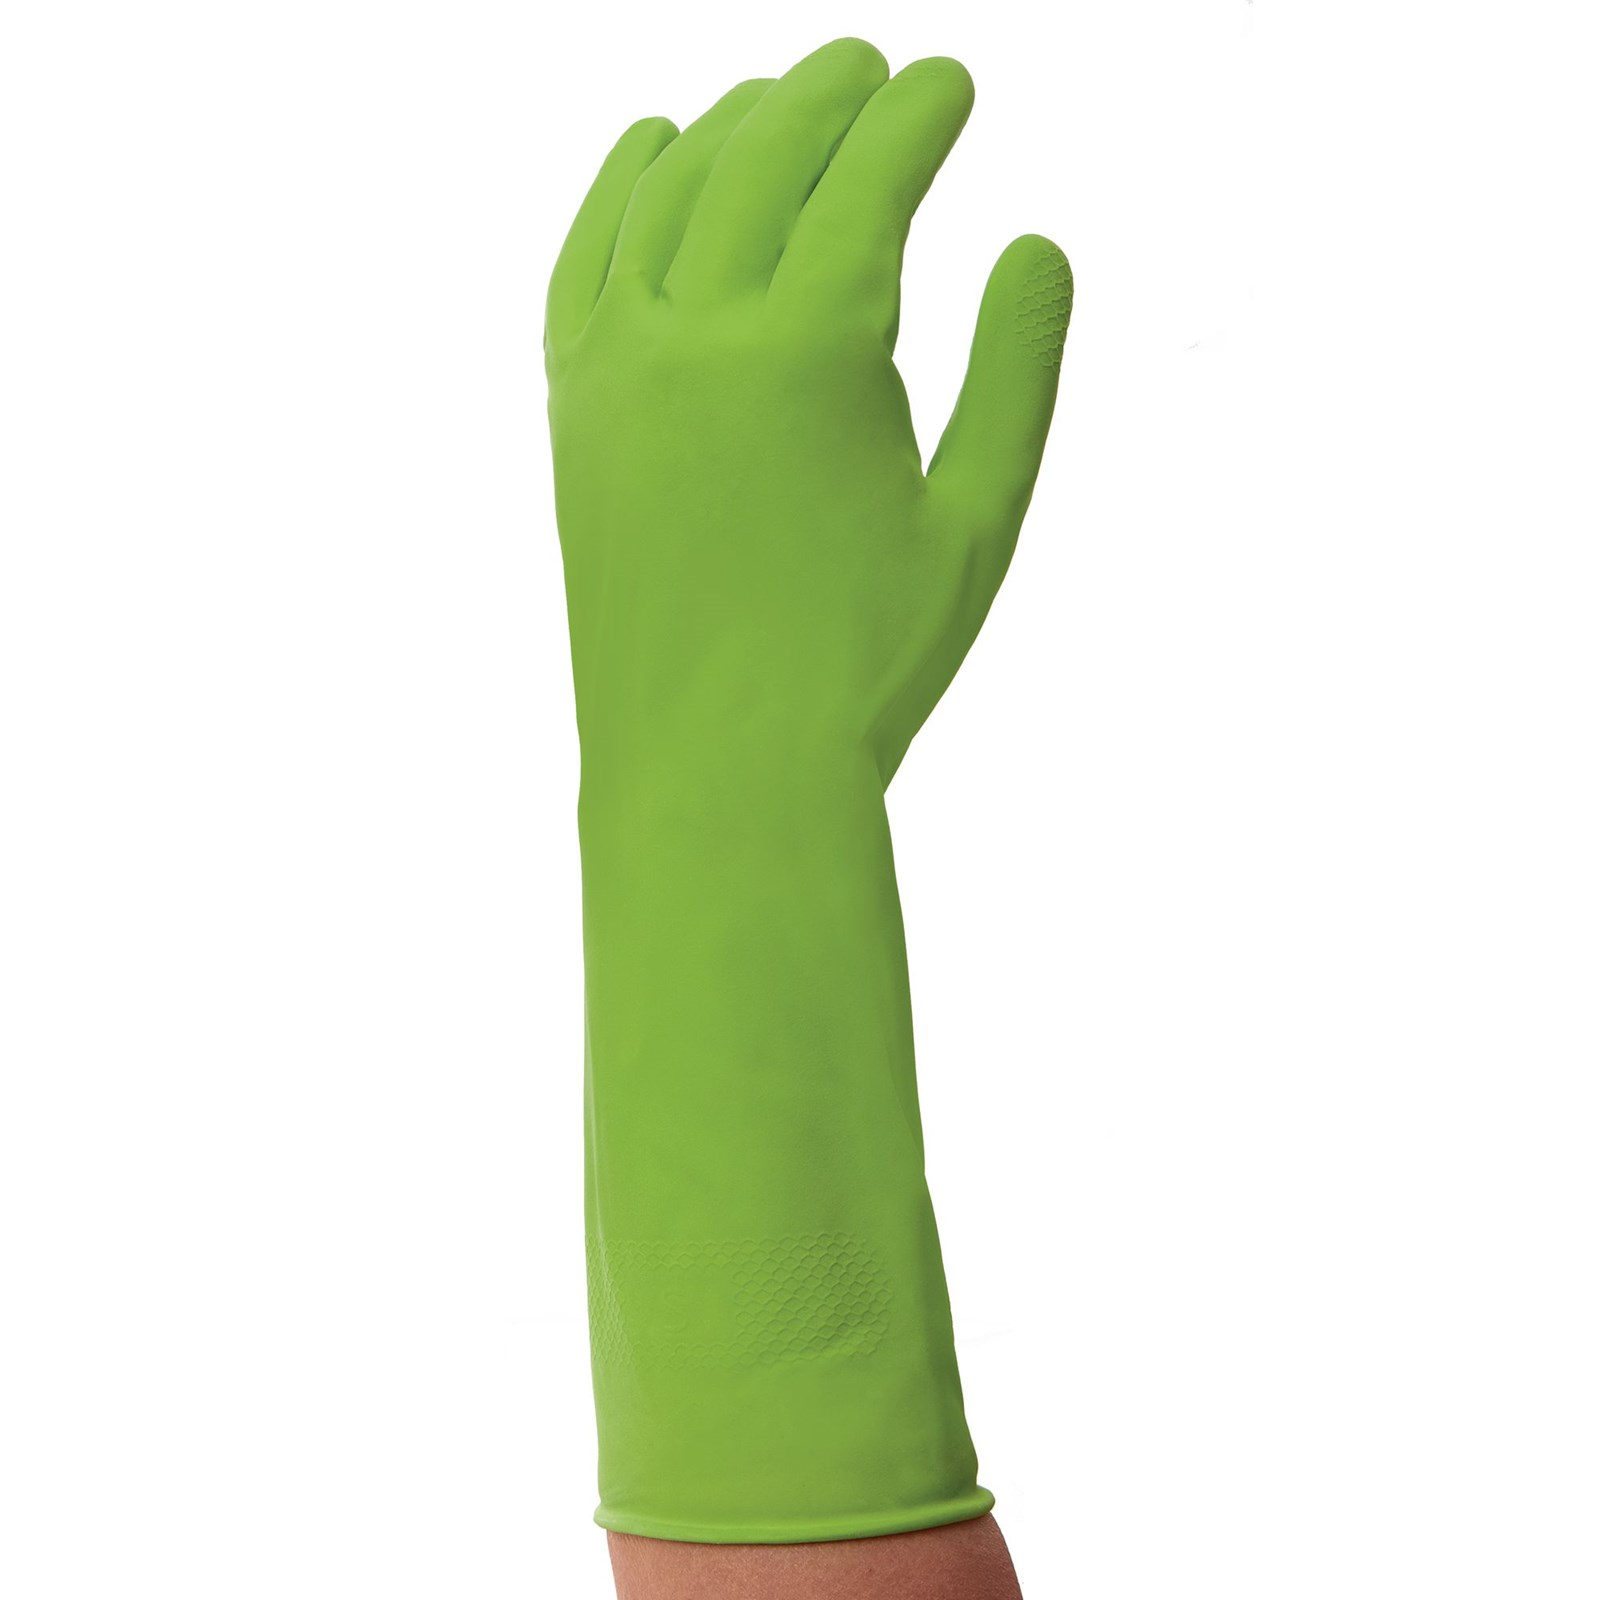 General Purpose Rubber Gloves -Green - Small Pack 12